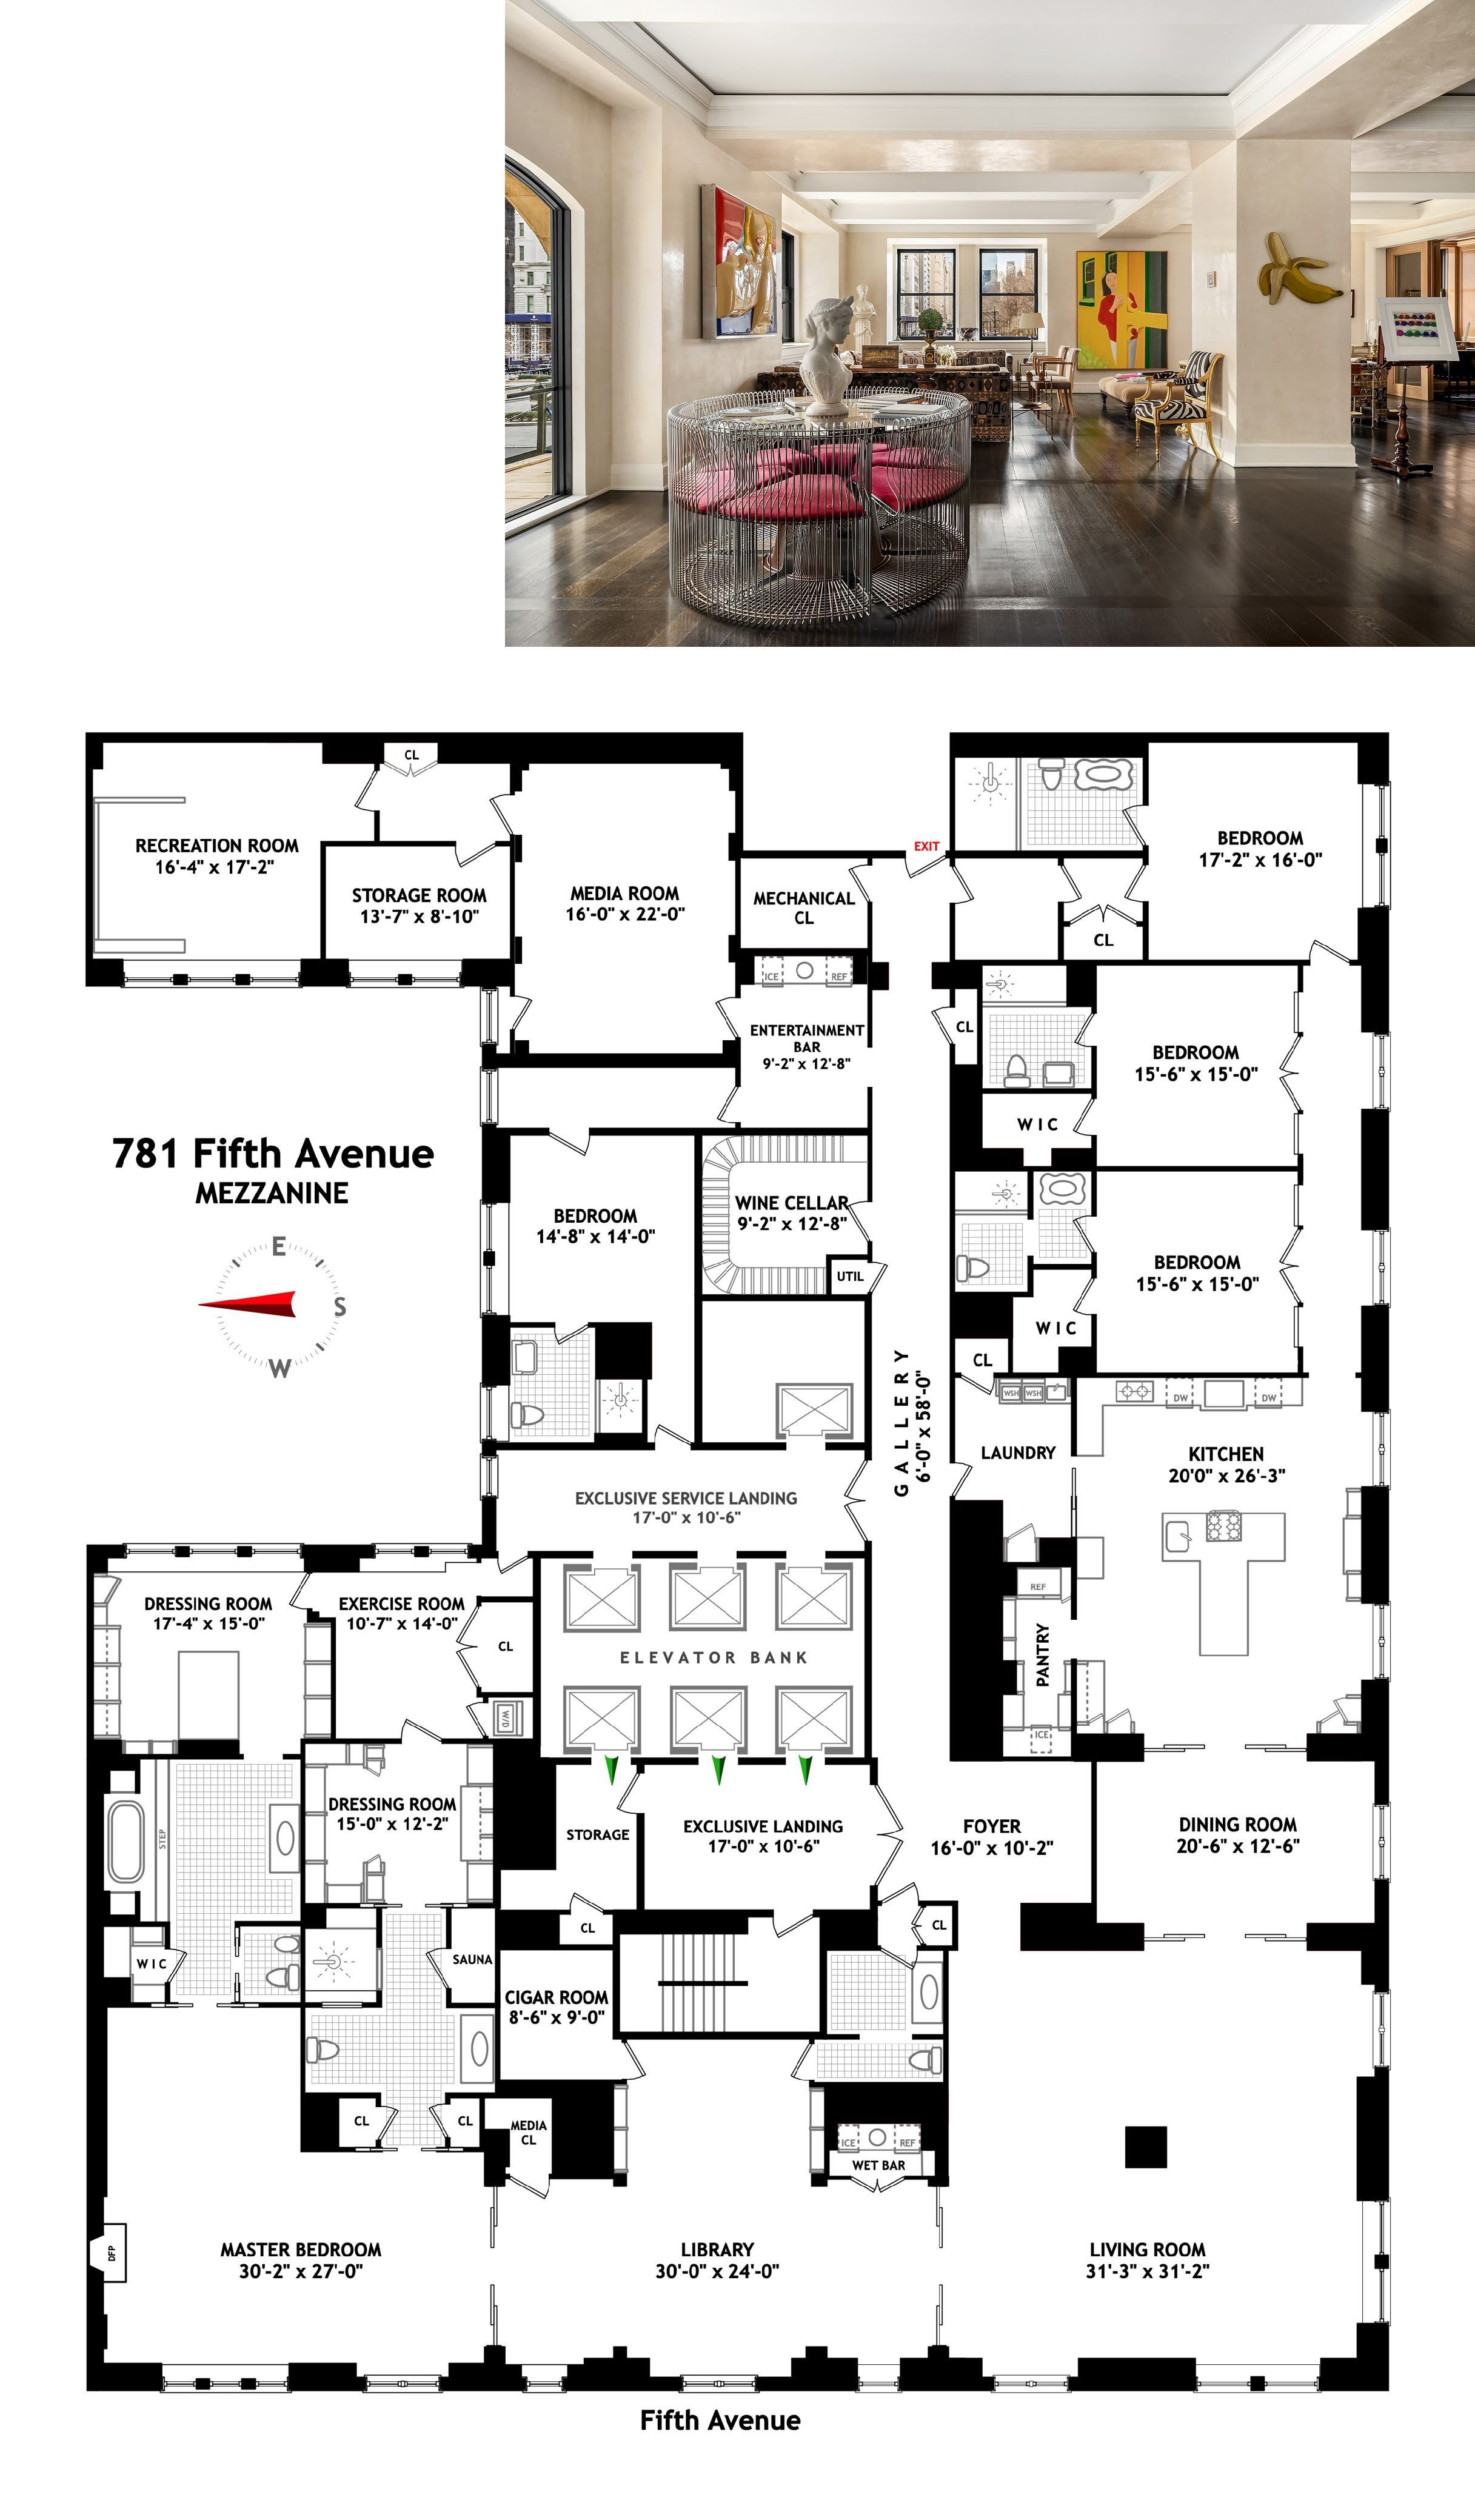 Sherry Netherland Upper East Side New York Co Op Property For Sale With 5 Bedrooms 6 In 2020 Luxury Floor Plans Apartment Floor Plans Penthouse Apartment Floor Plan